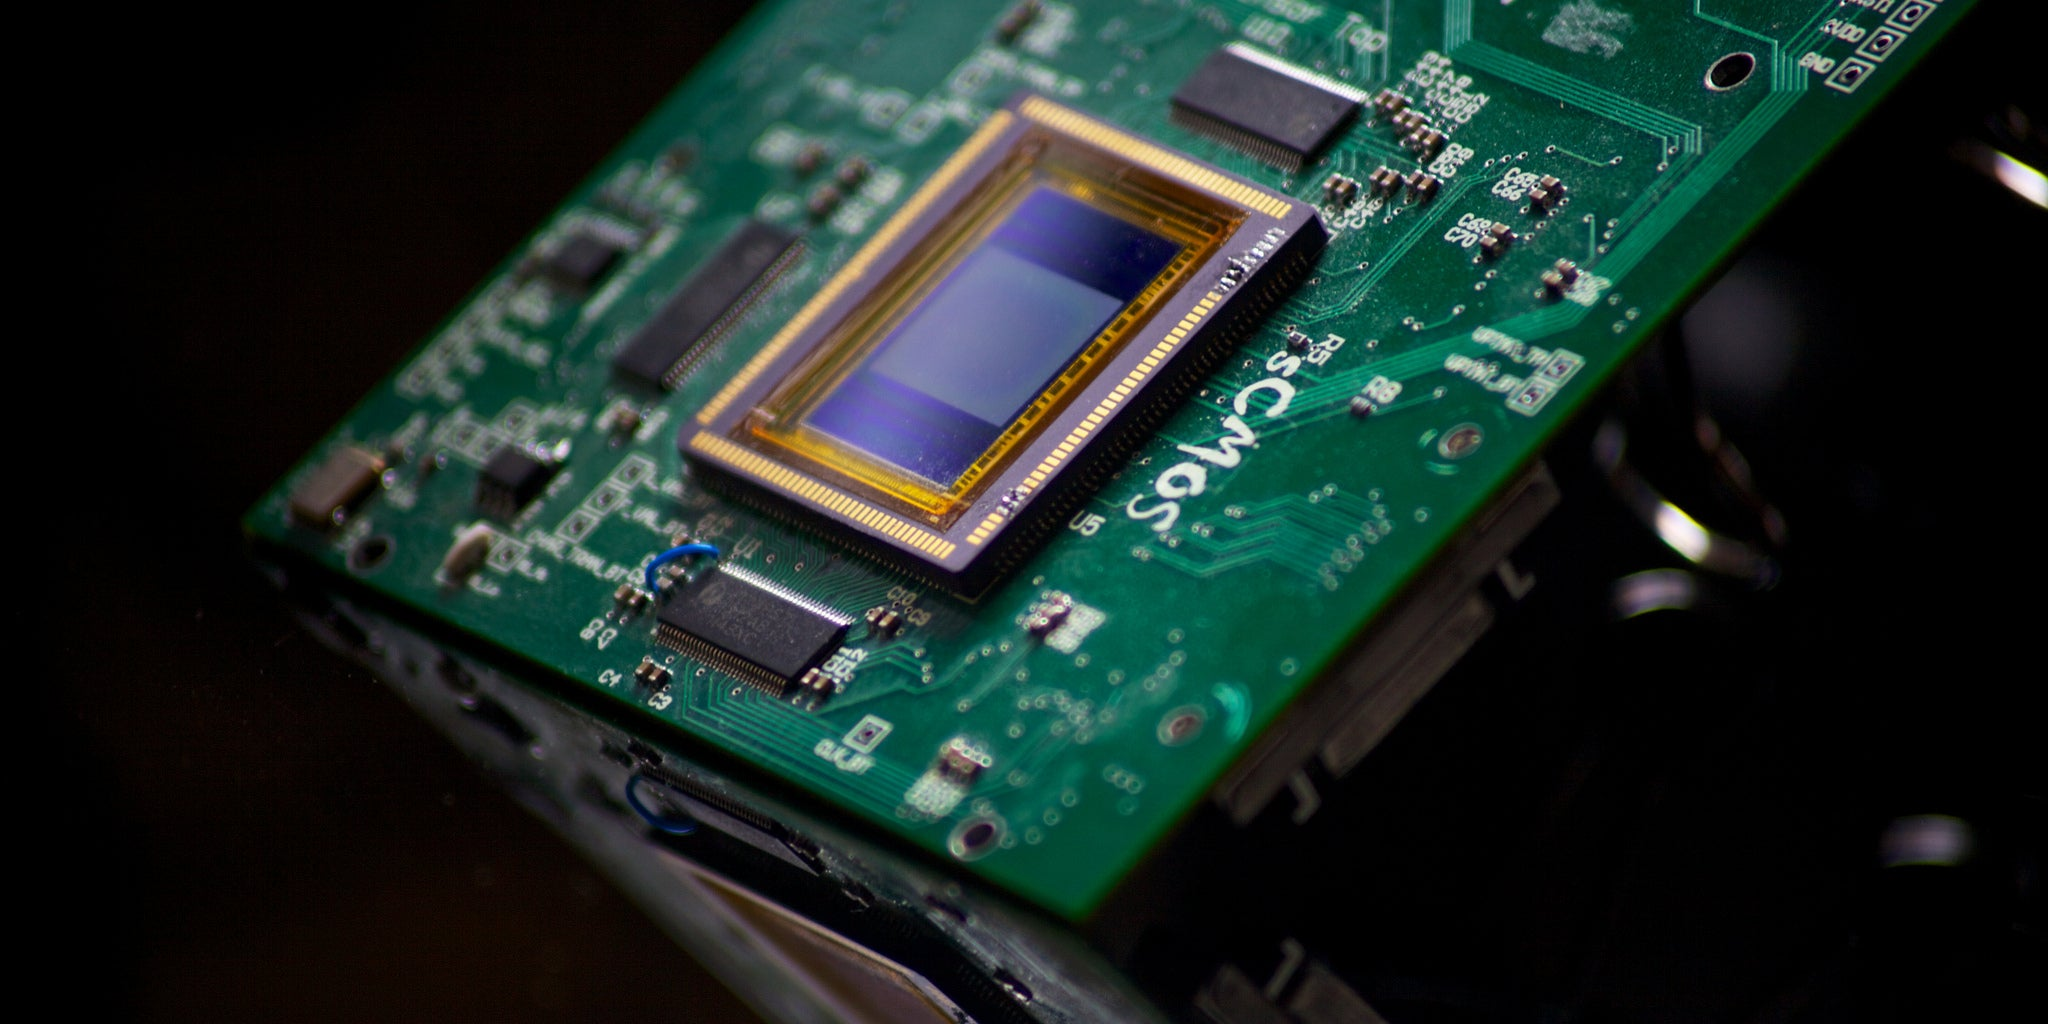 Sony Plans To Take Over Toshiba's Image Sensor Division